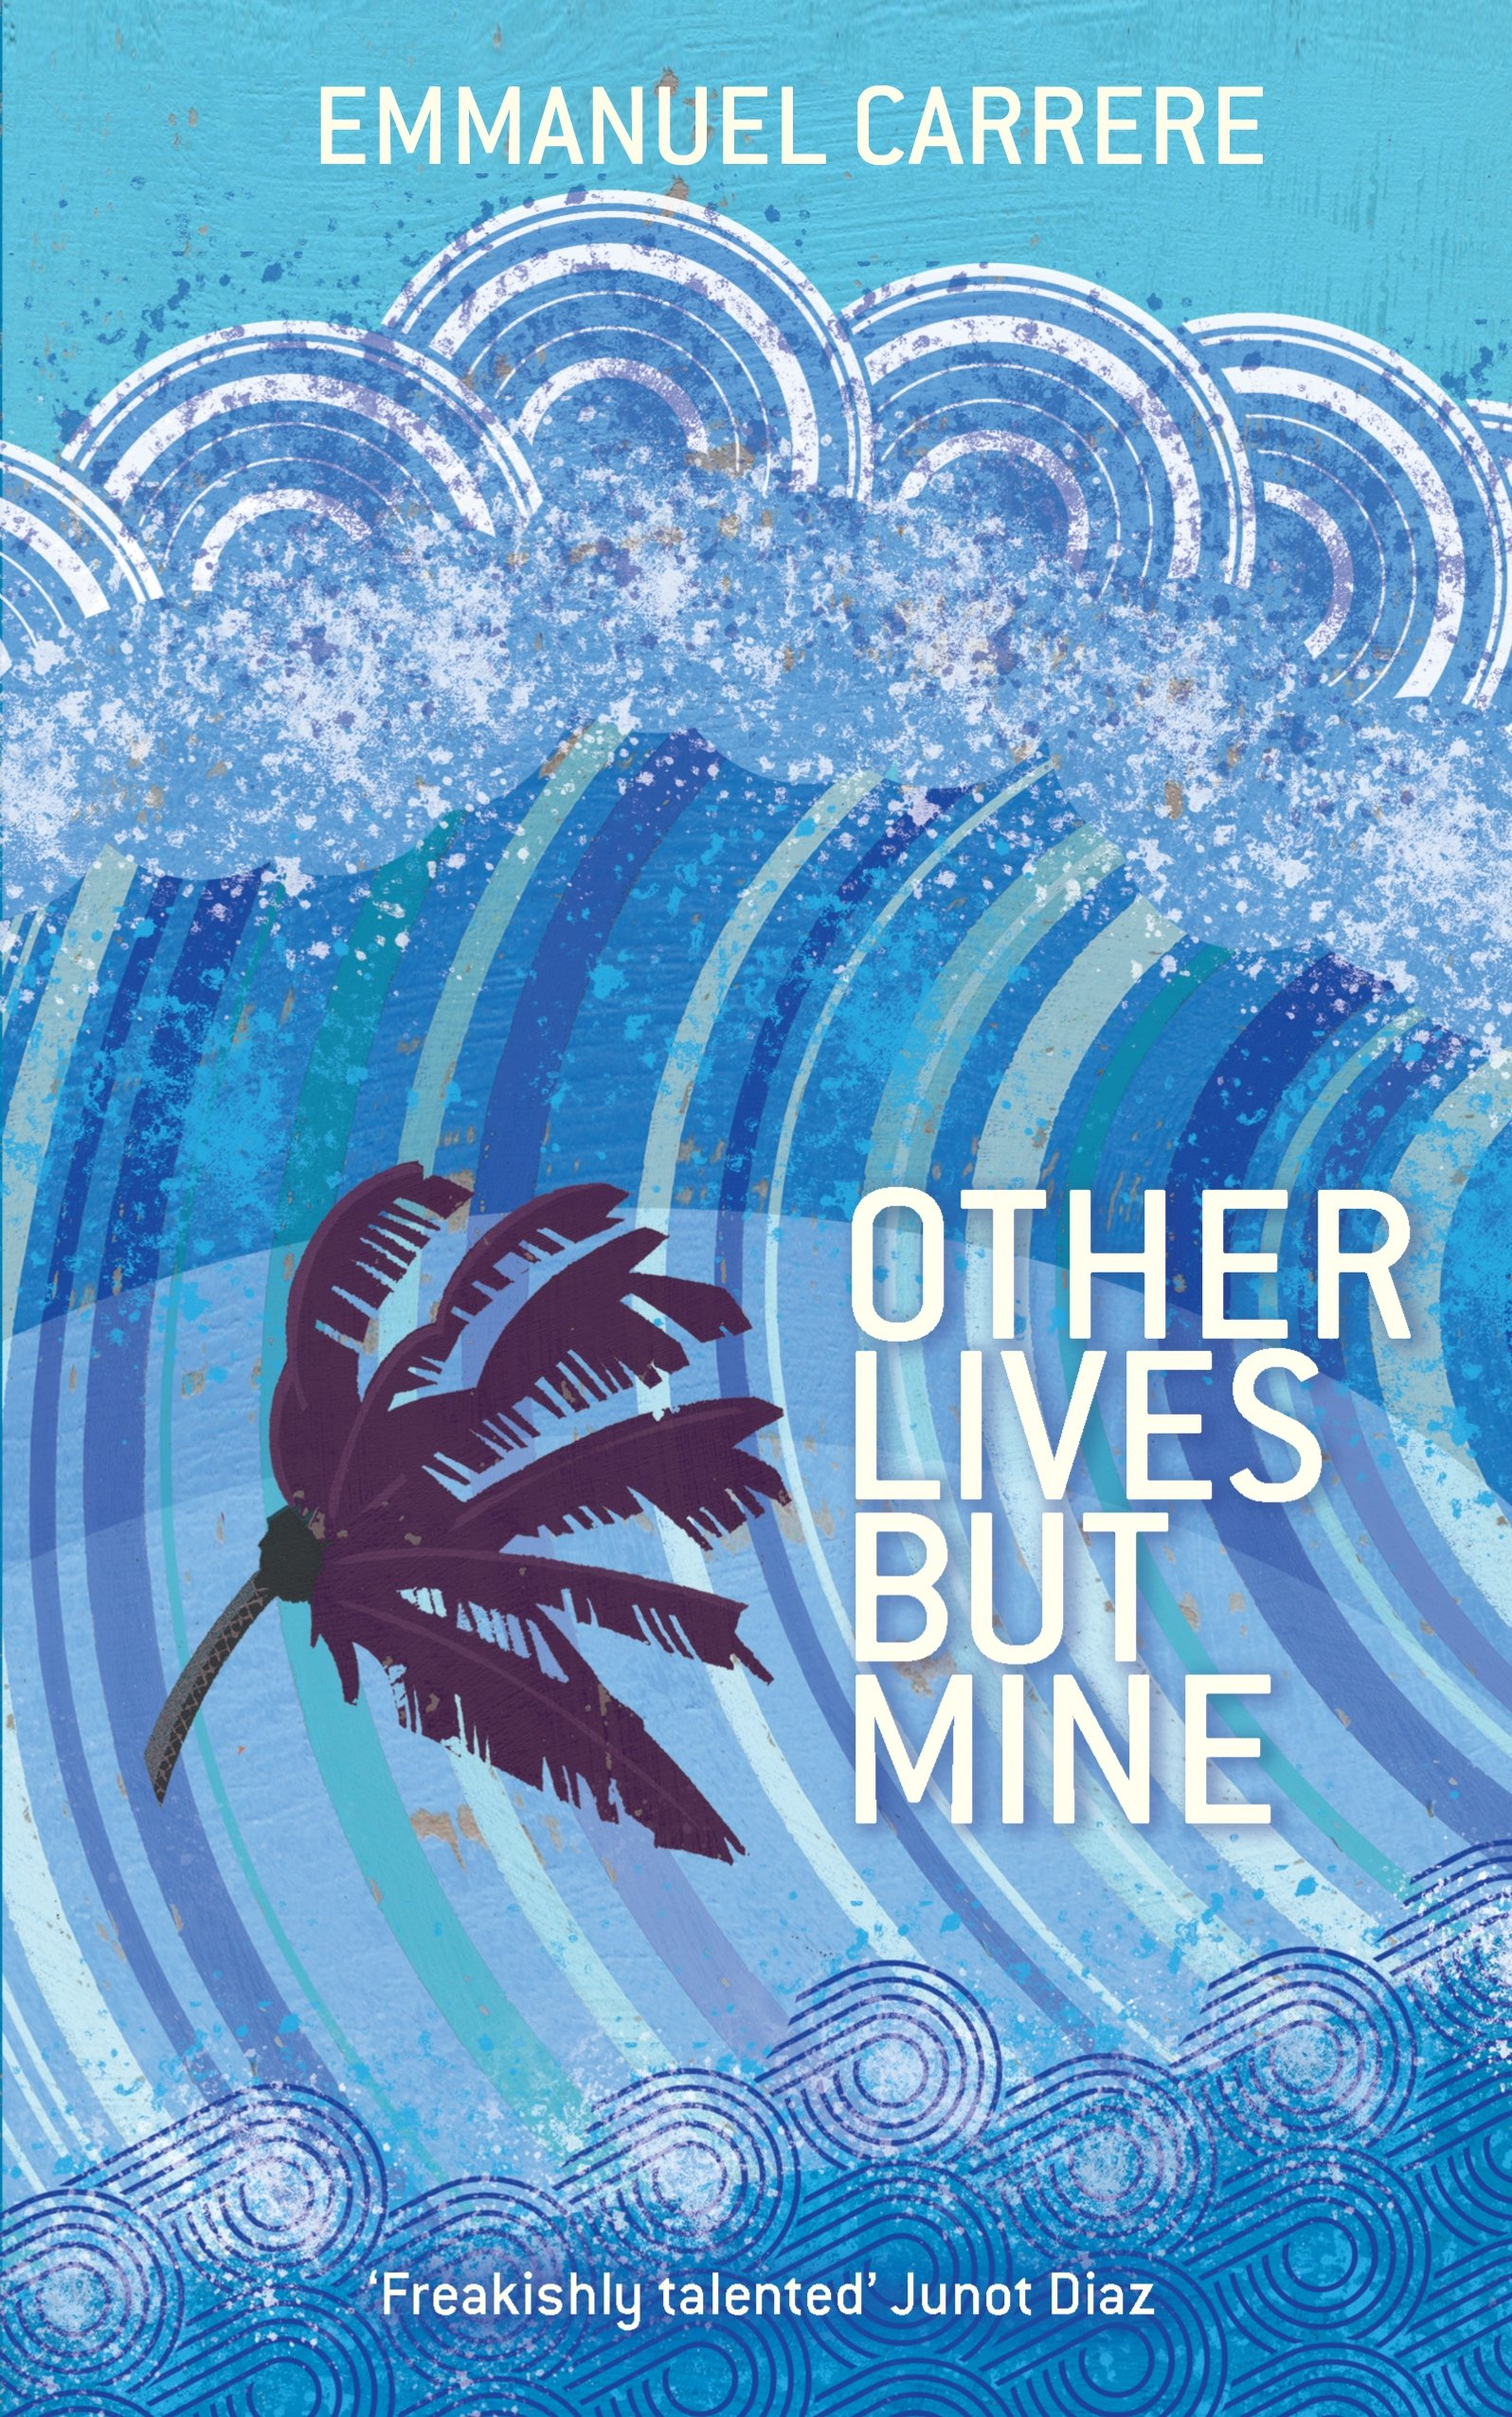 Other Lives But Mine: Emmanuel Carrere: 9781846687655: Amazon: Books